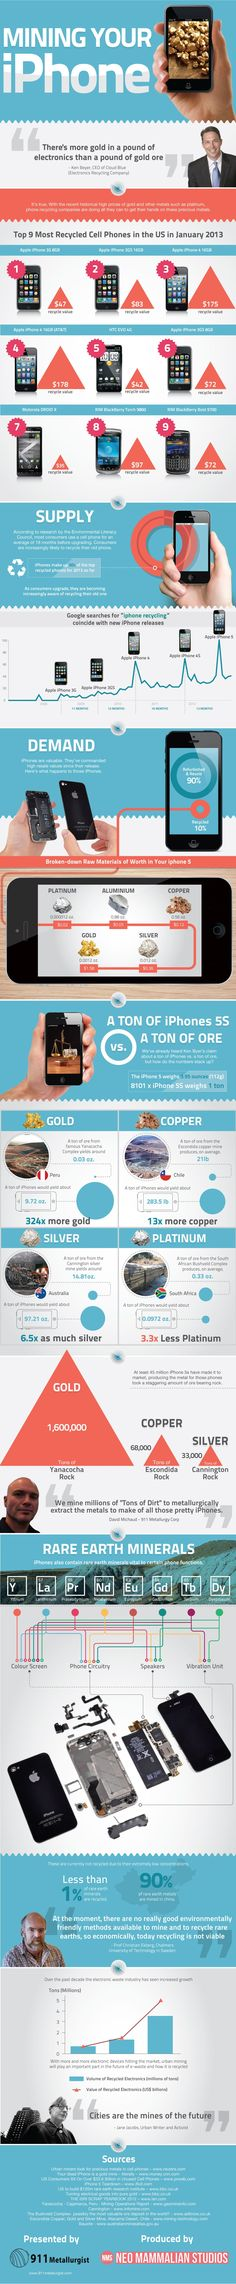 INFOGRAPHIC: Mining your iPhone